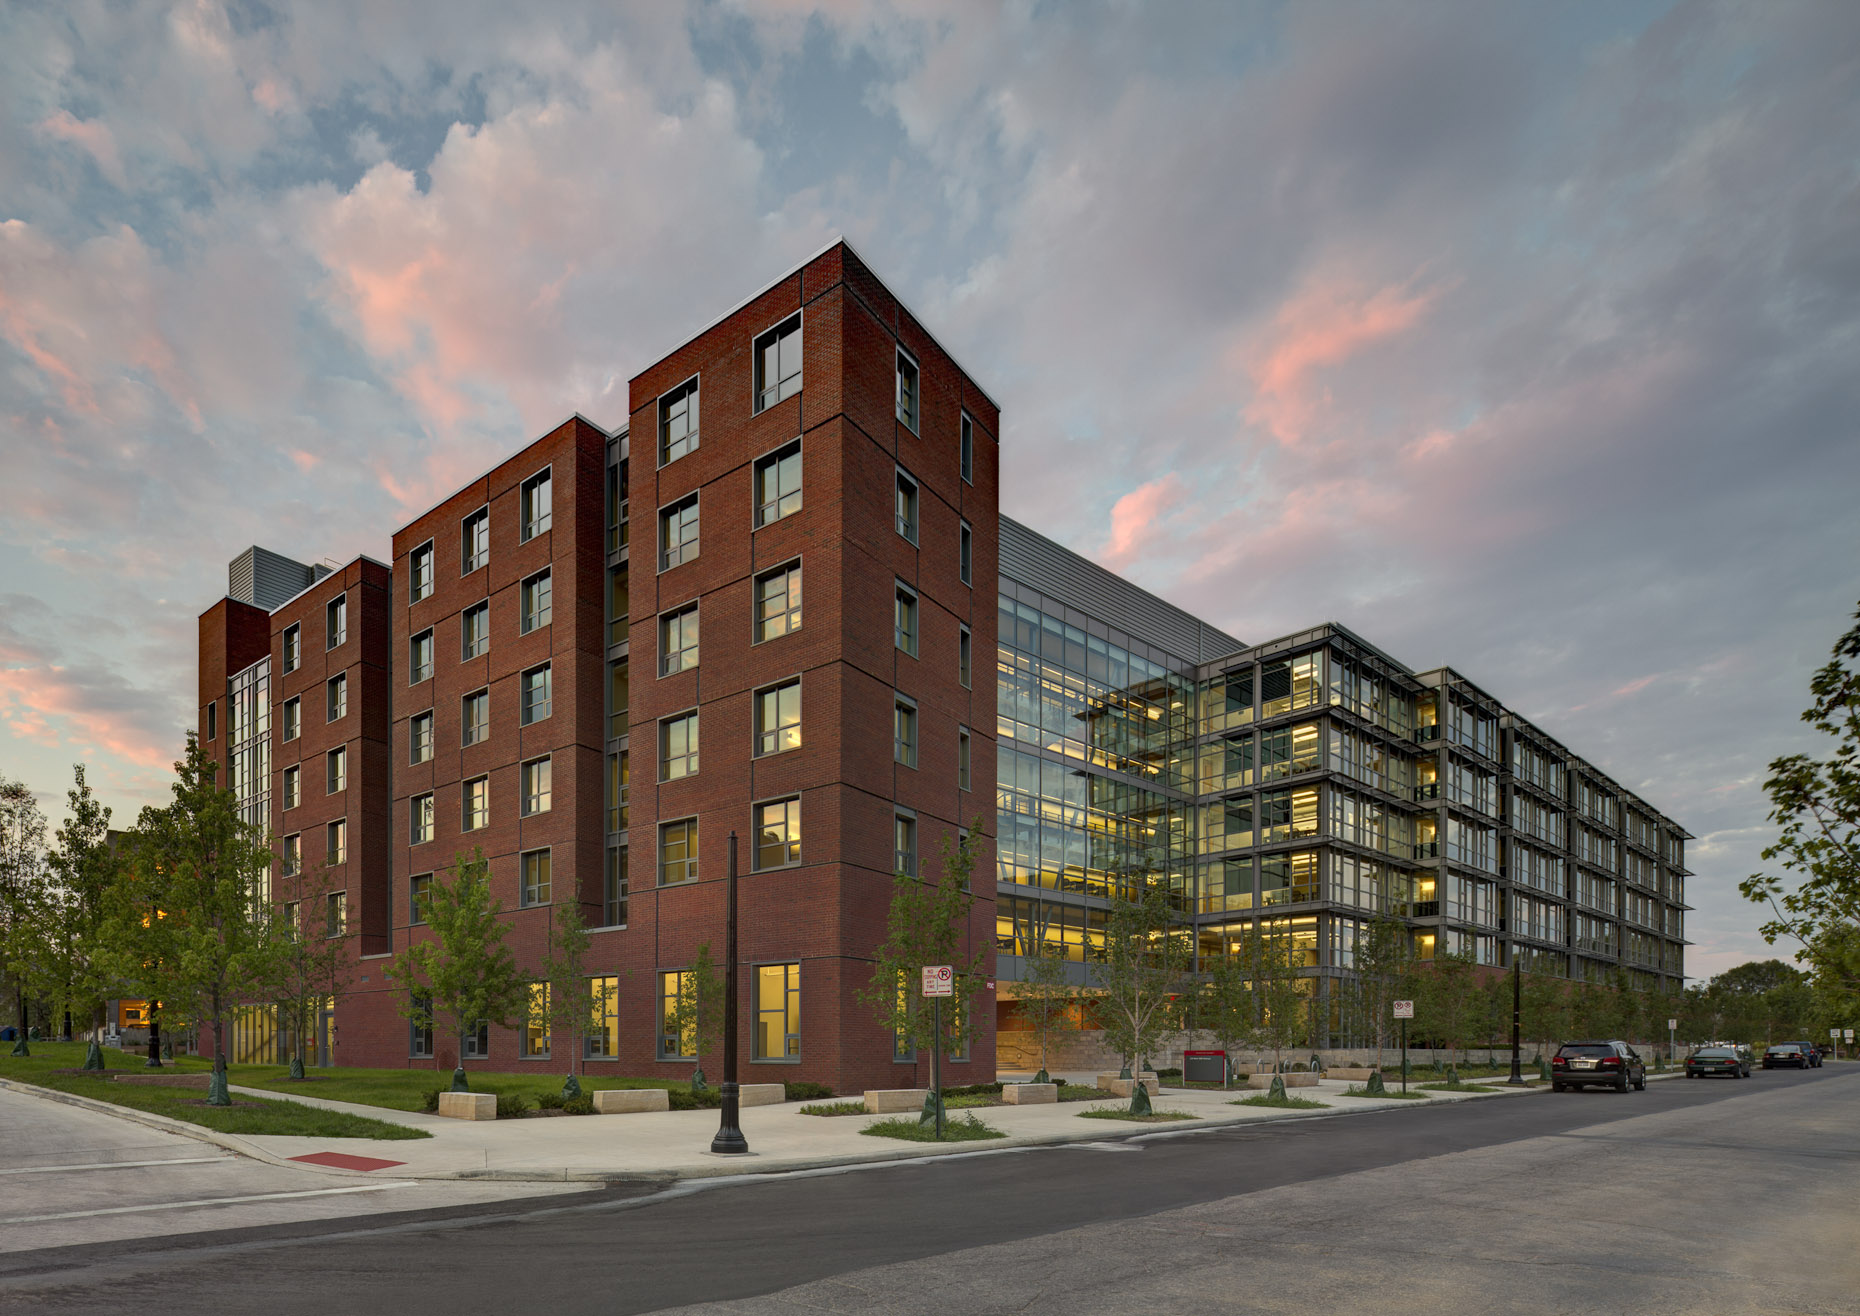 Williams Hall / Residences on Tenth at The Ohio State University by Acock Associates Architects